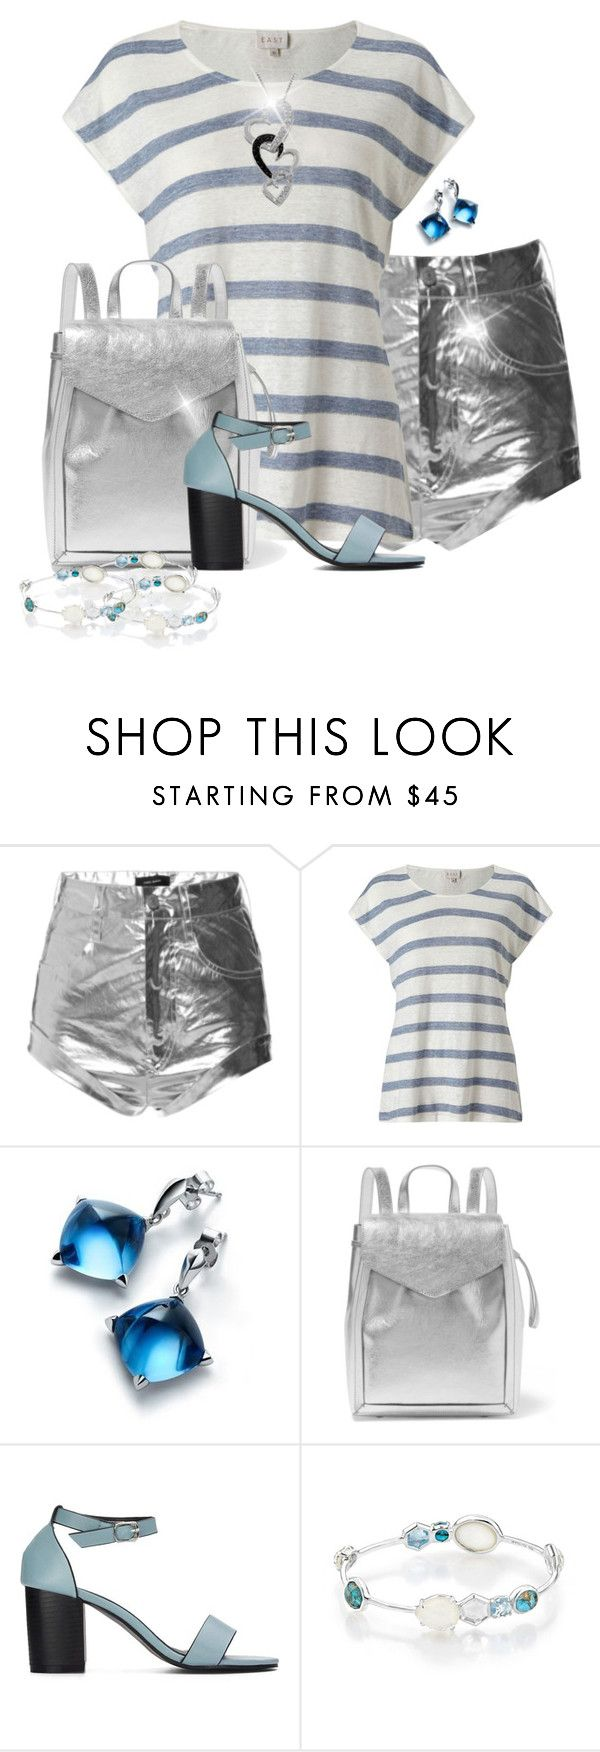 """""""Shine On"""" by tinayar ❤ liked on Polyvore featuring Isabel Marant, EAST, Baccarat, Loeffler Randall, Ippolita and Jewel Exclusive"""